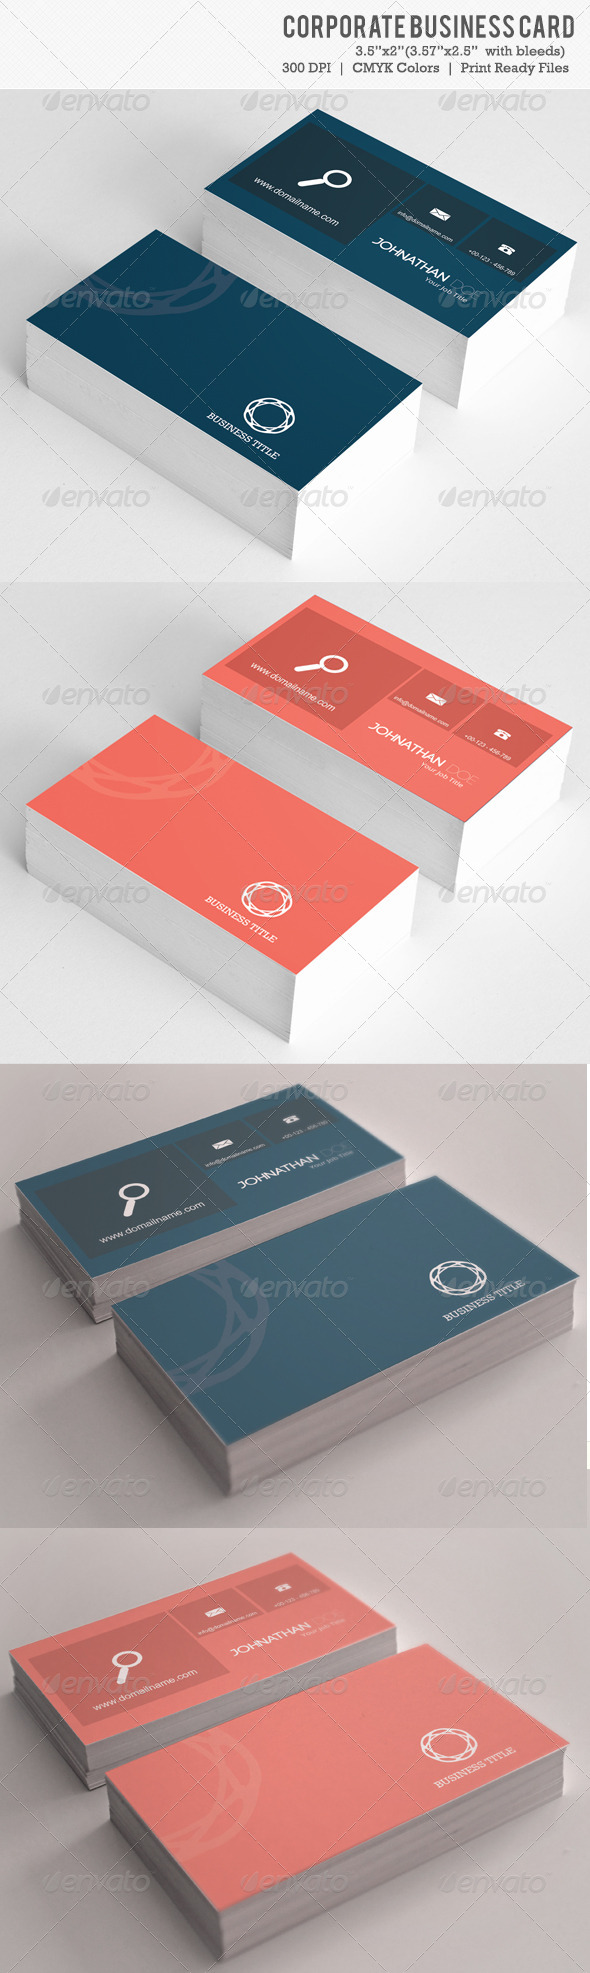 GraphicRiver Corporate Business Card 6141032